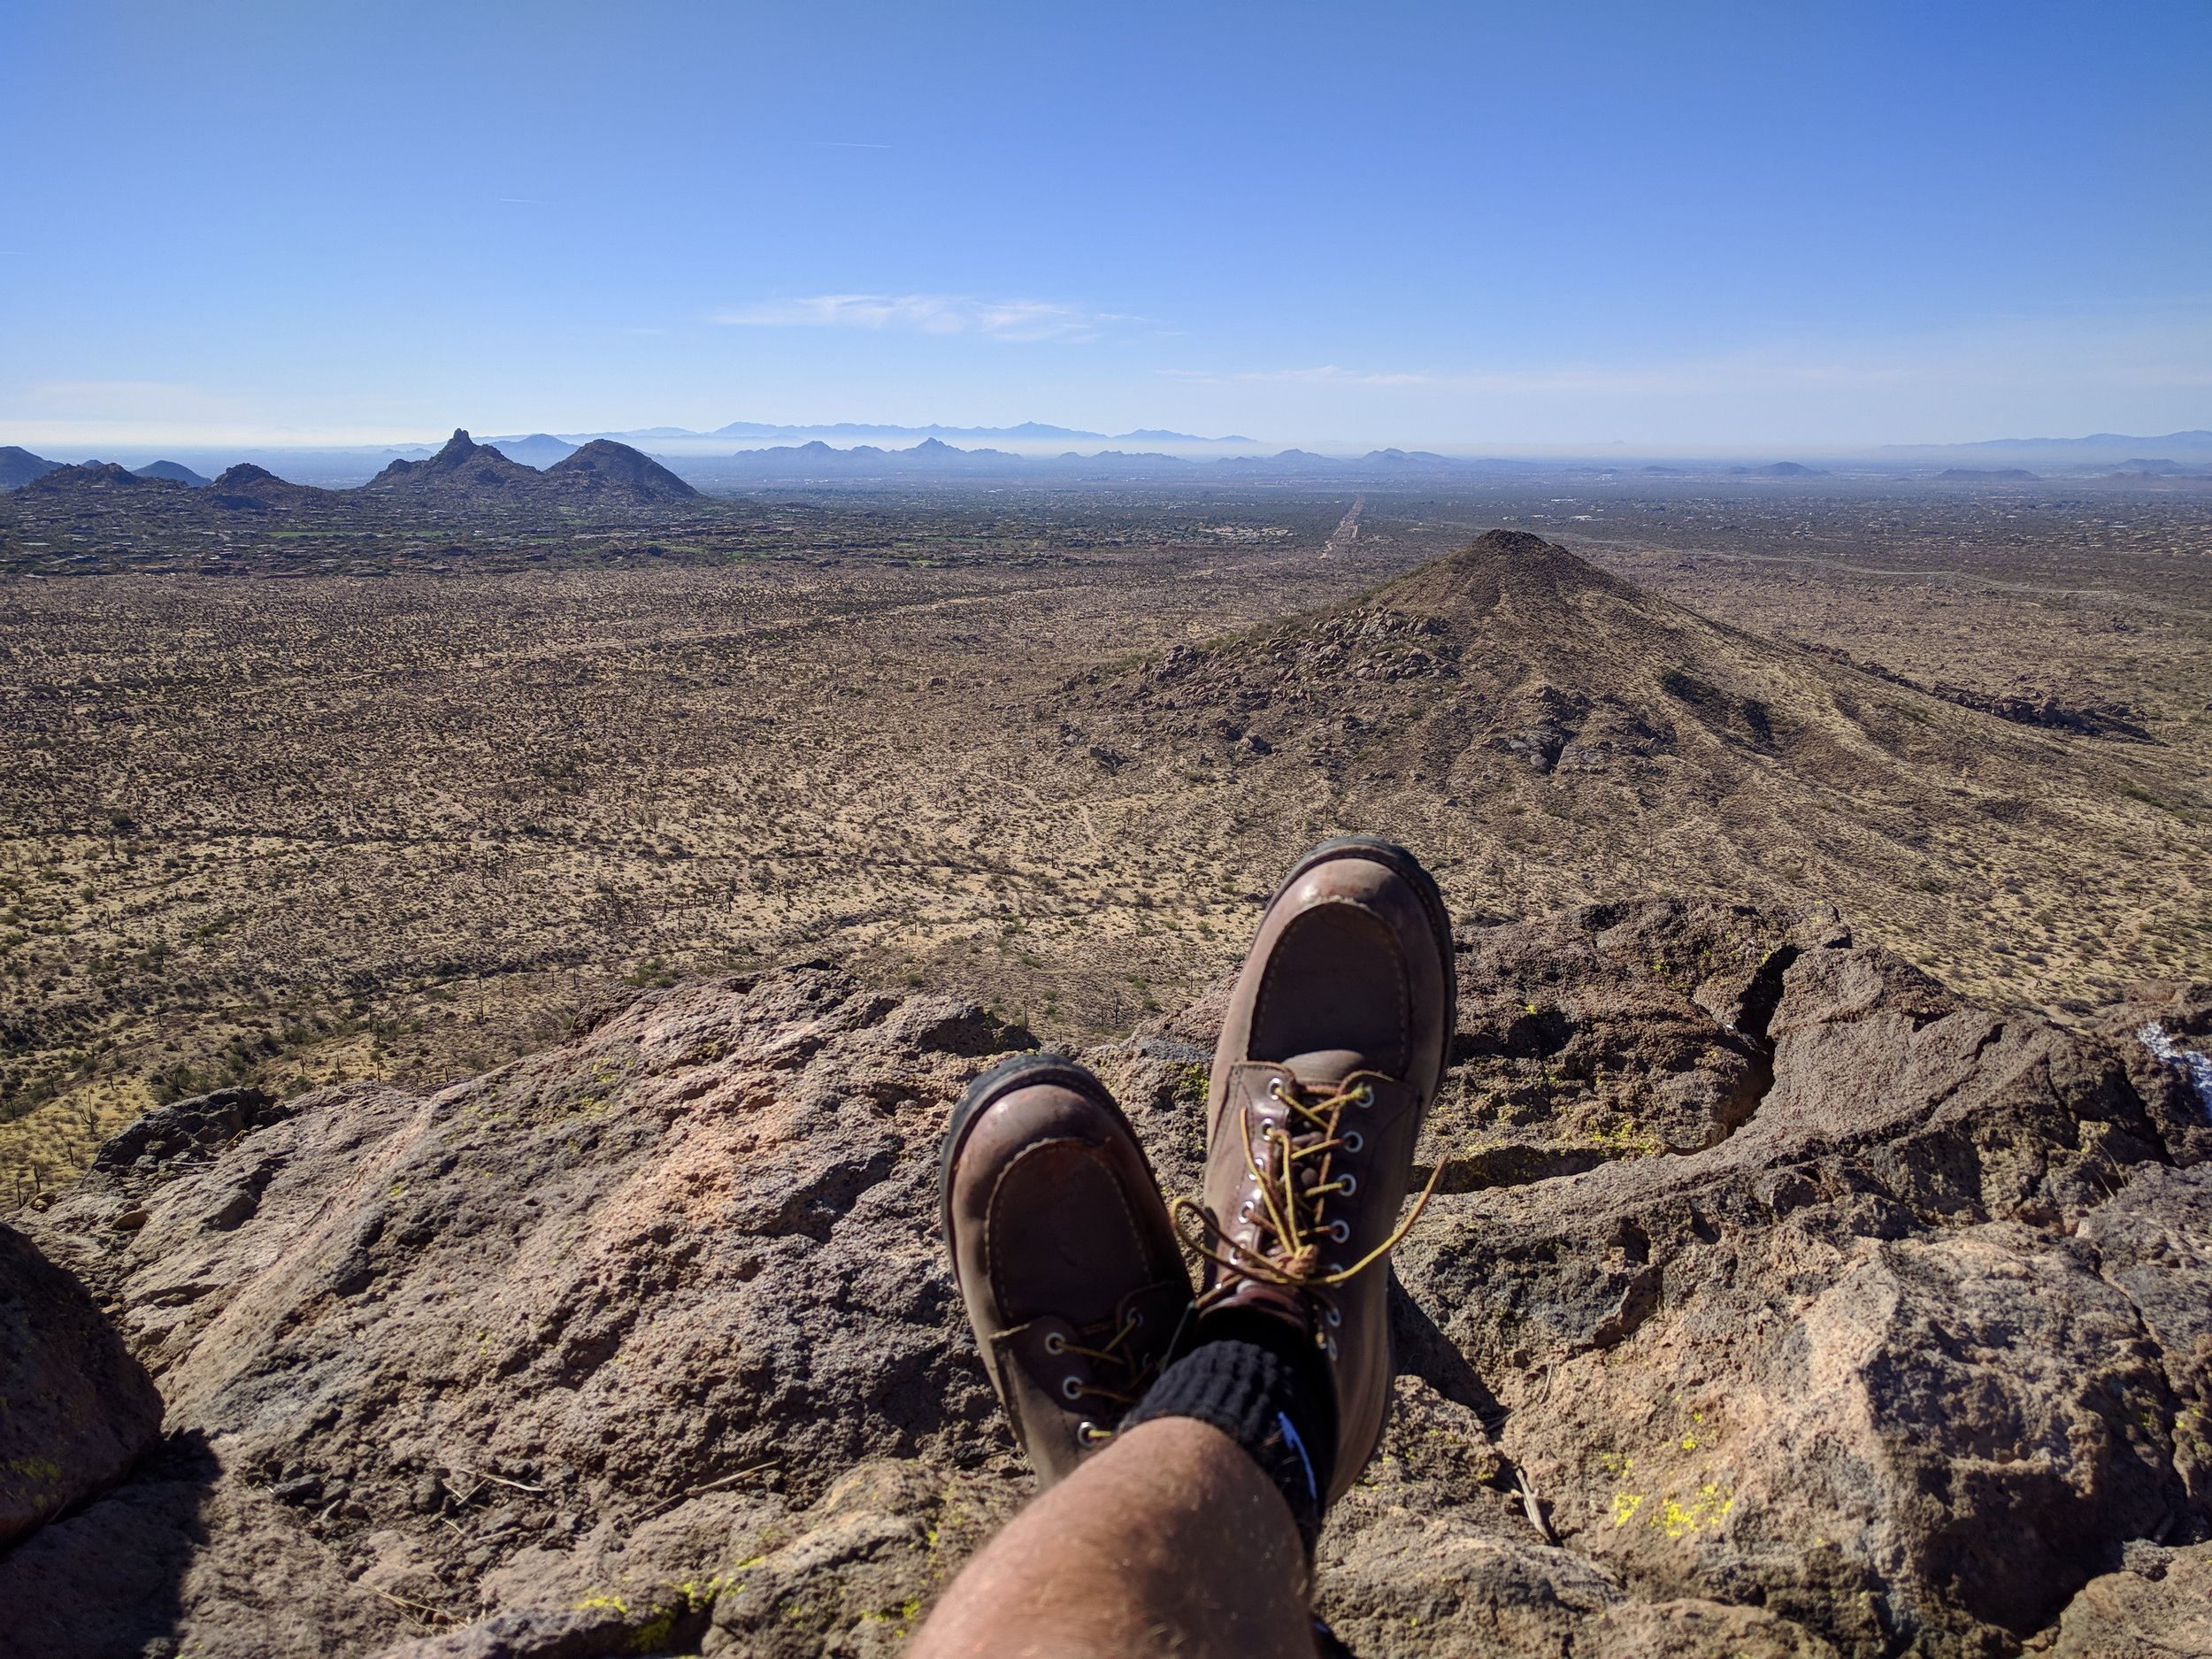 Atop Brown's Mountain, looking at Cone Mountain